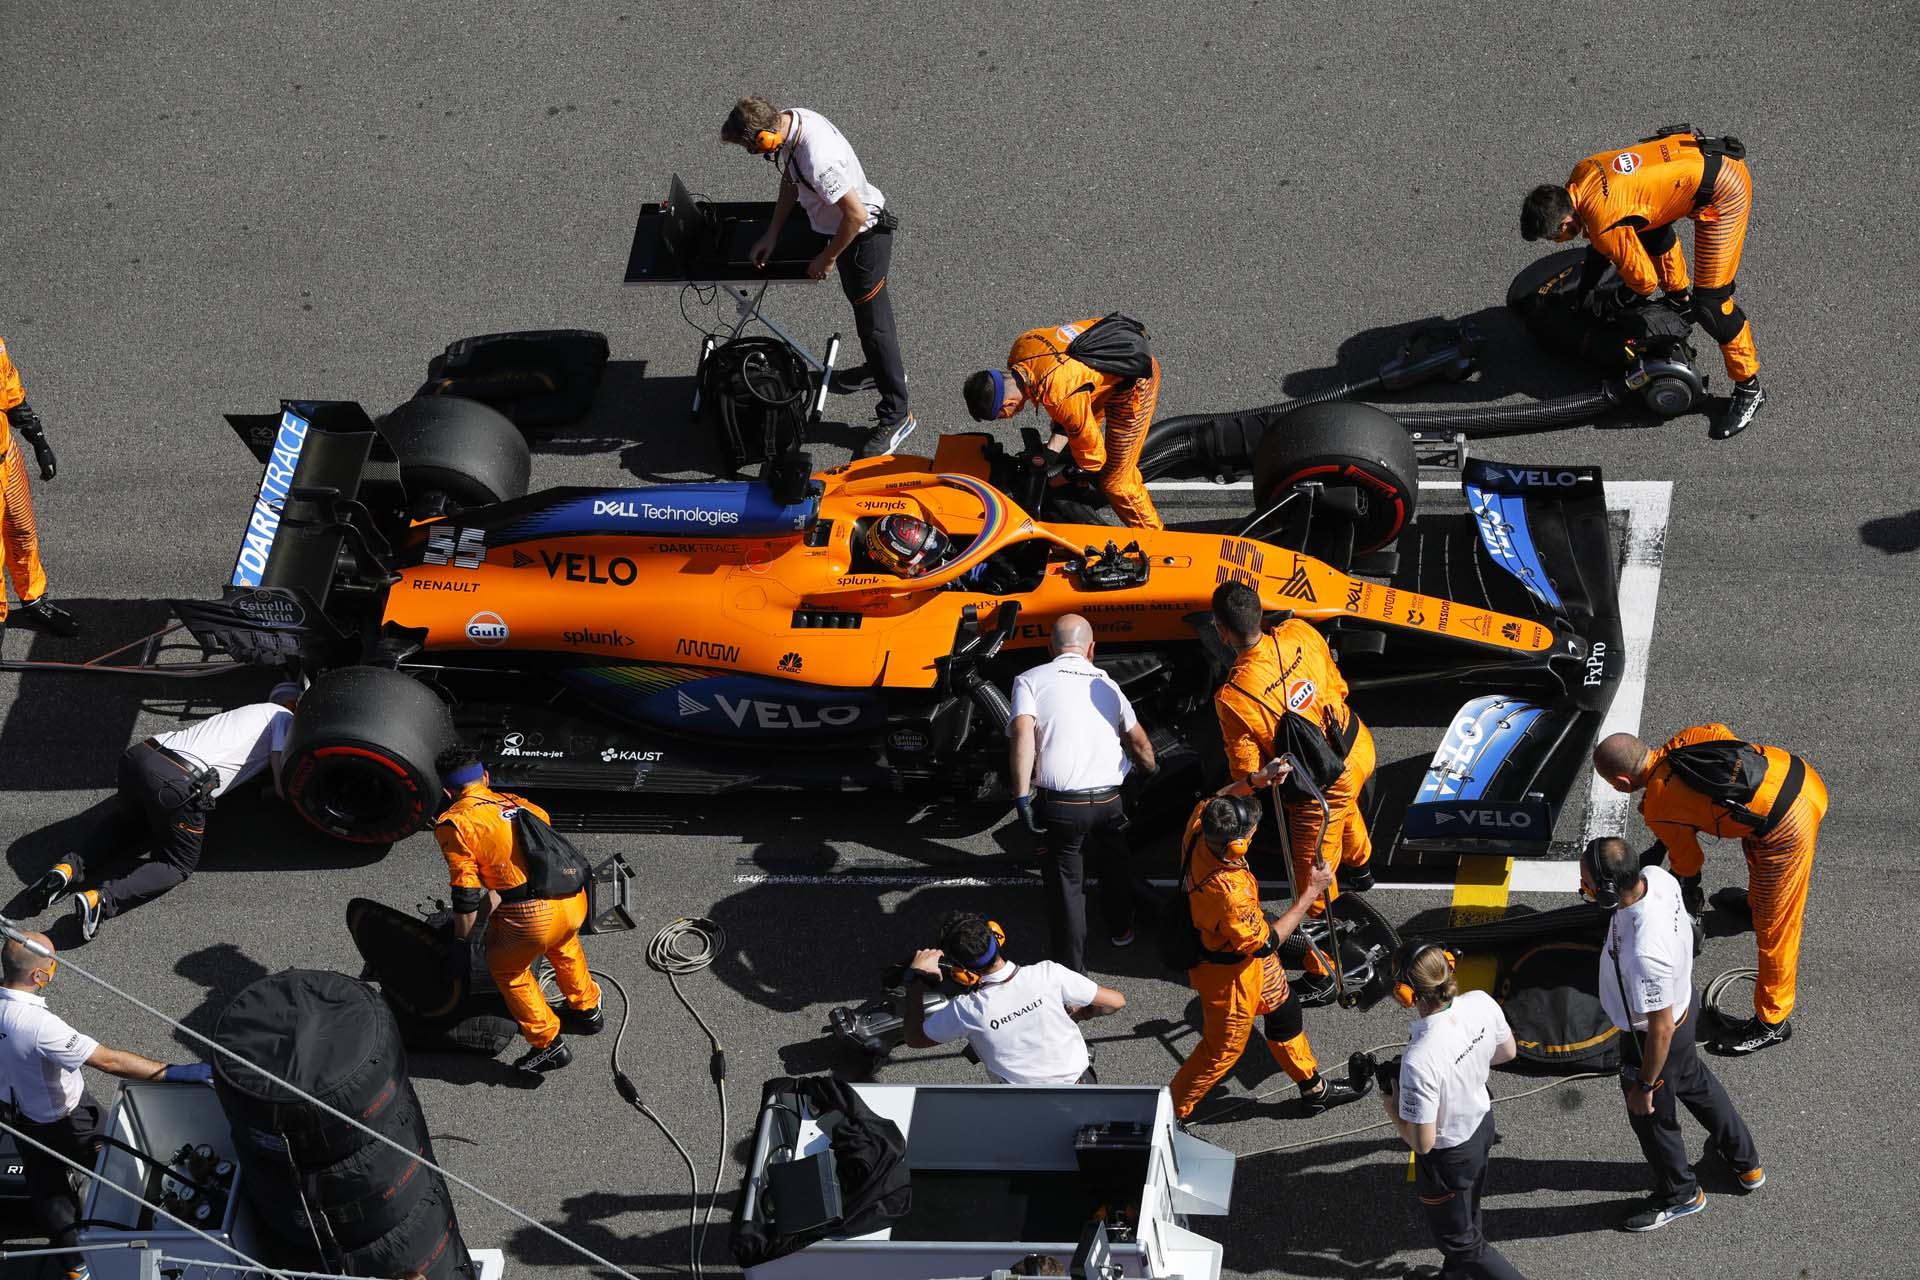 Carlos Sainz, McLaren MCL35, on the grid